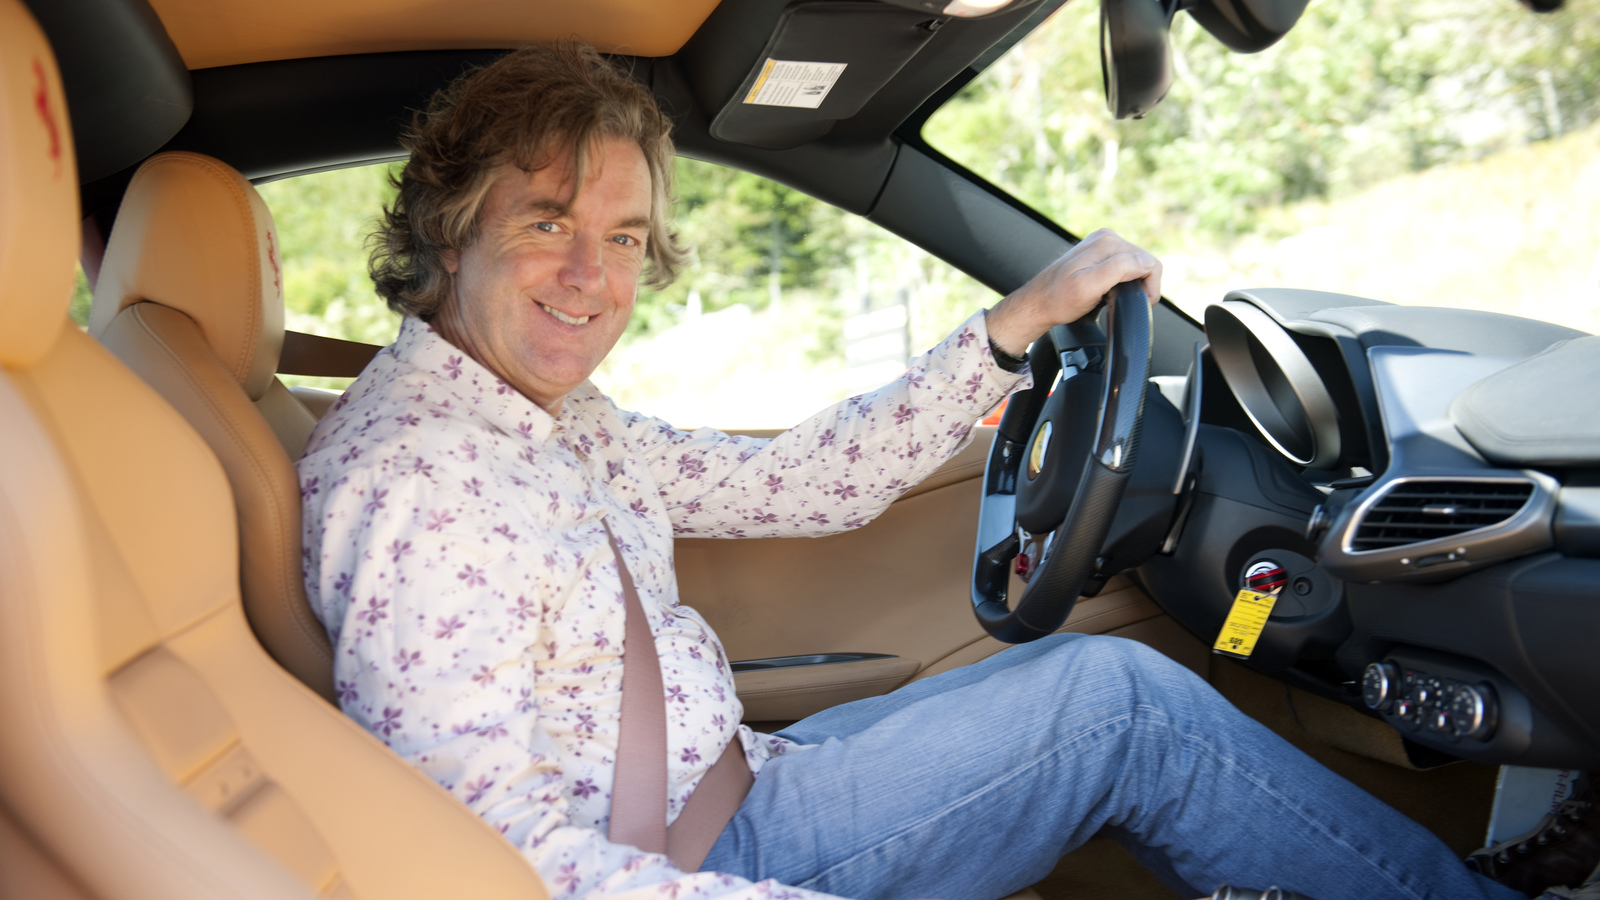 james may the reassembler